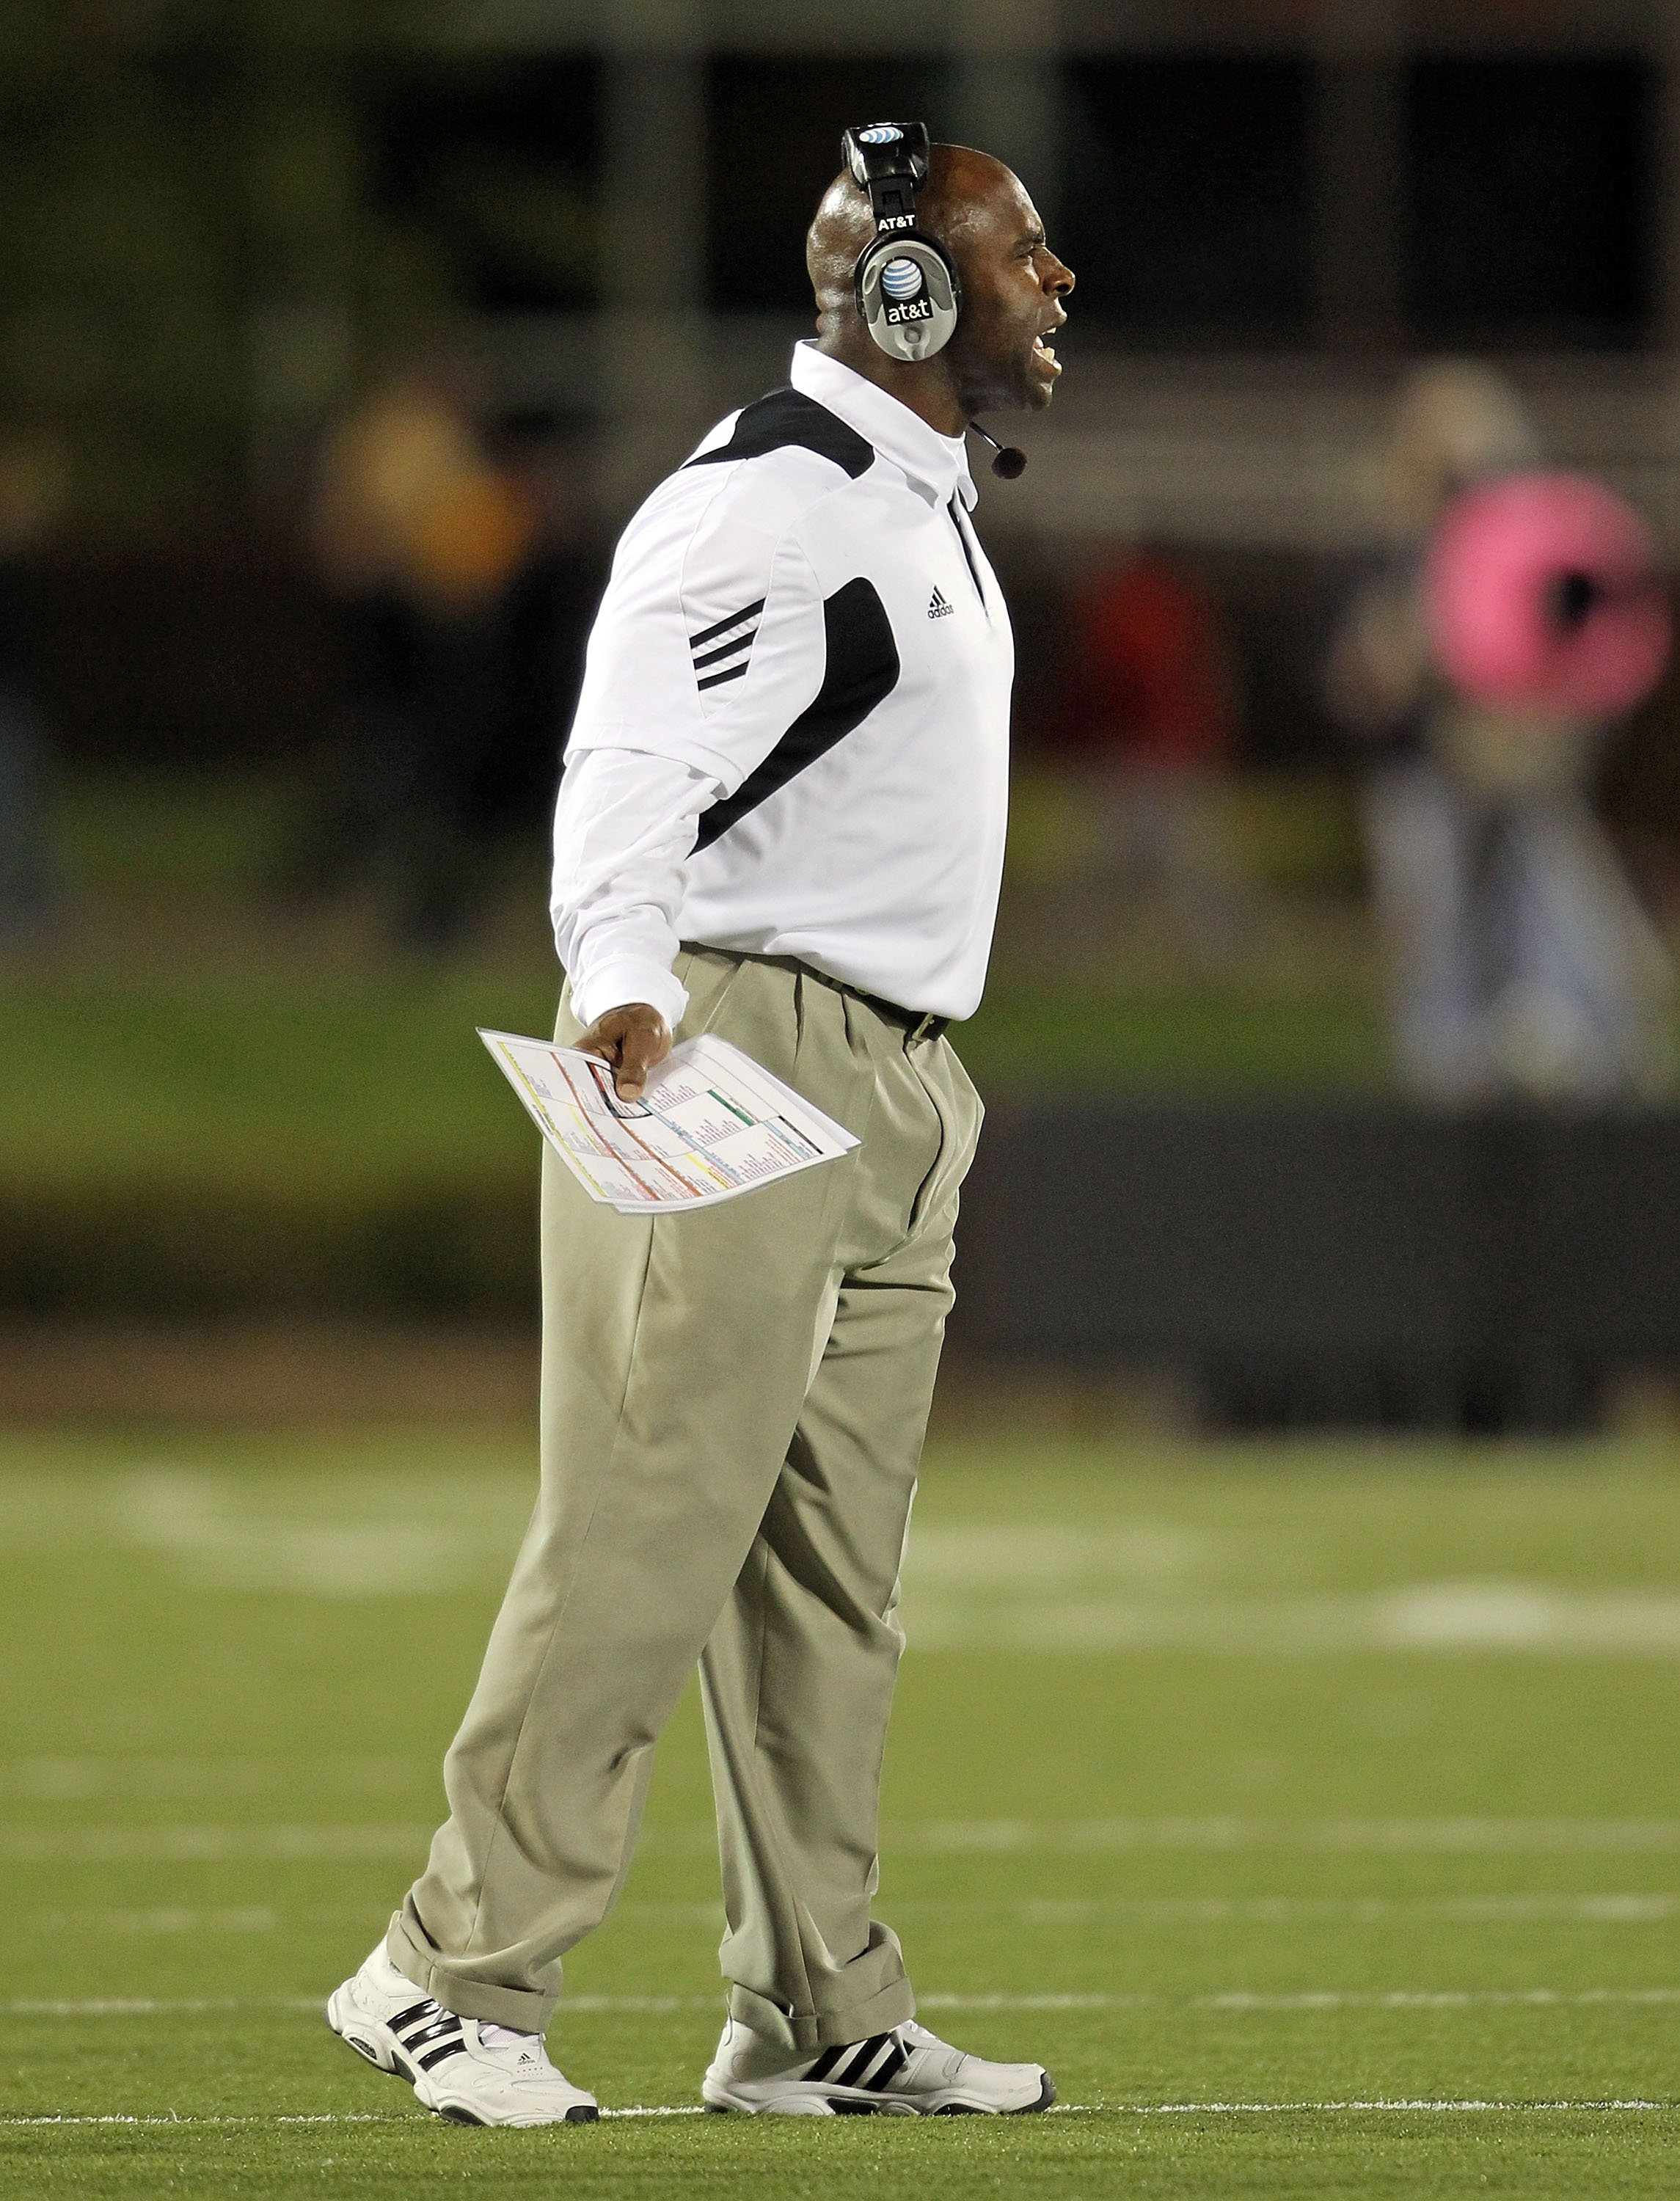 LOUISVILLE, KY - OCTOBER 15: Charlie Strong the Haed Coach of the Louisville Cardinals gives instructions to his team during the Big East Conference game against the Cincinnati Bearcats at Papa John's Cardinal Stadium on October 15, 2010 in Louisville, Ke